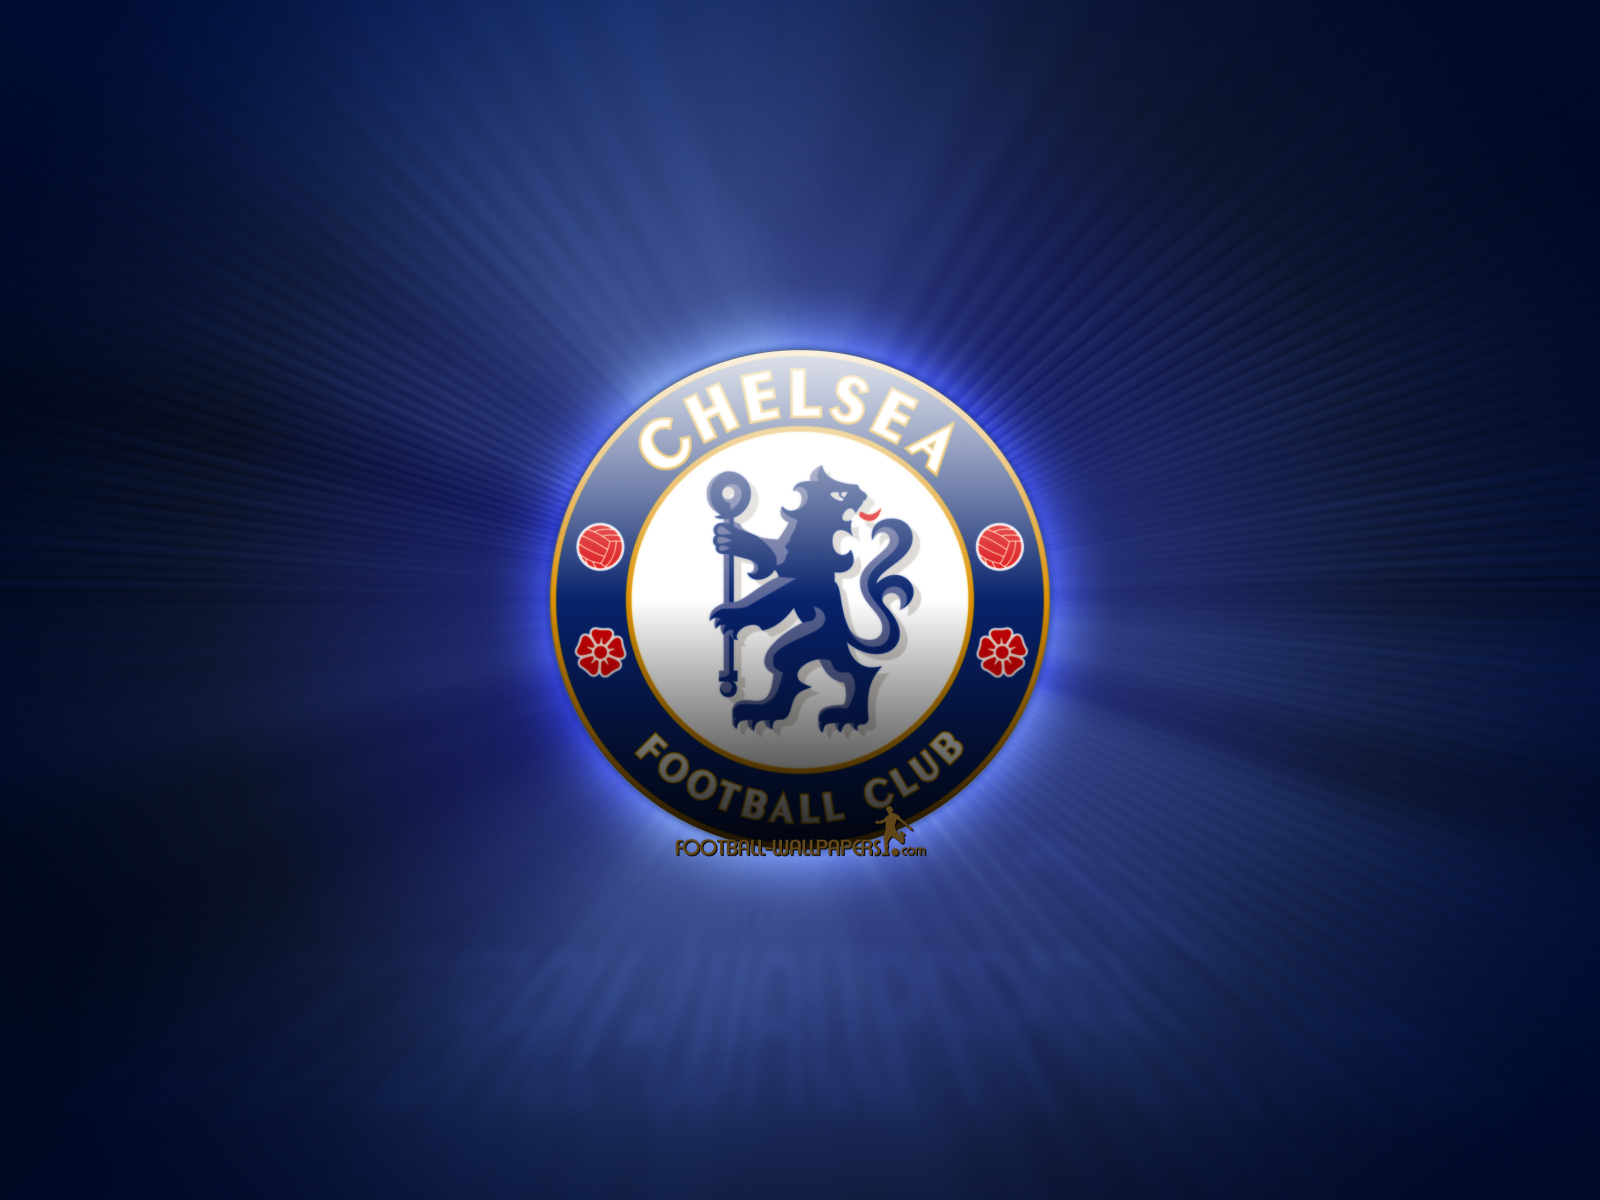 Chelsea Fc Wallpapers HD HD Wallpapers Backgrounds 1600x1200